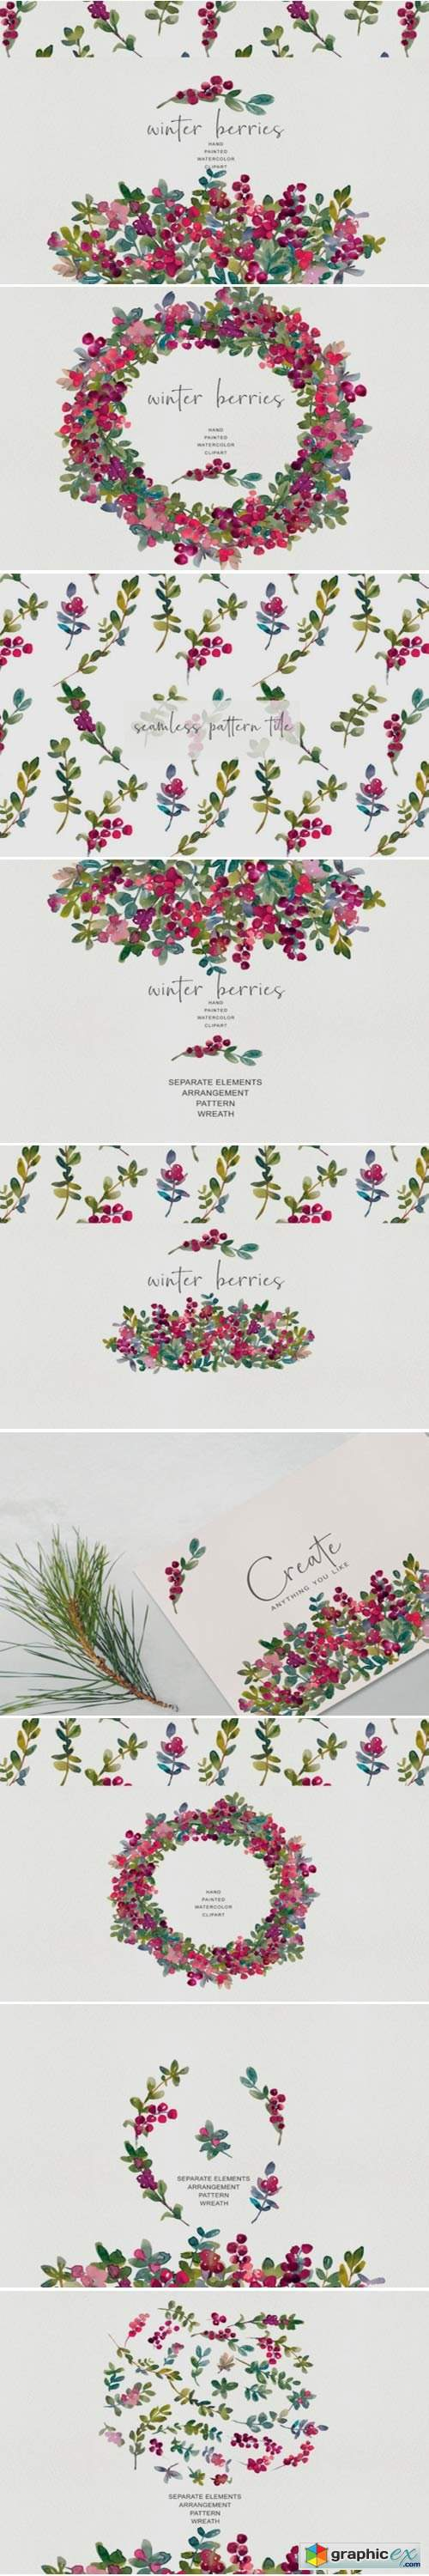 Watercolor Winter Berry Clipart - Winter